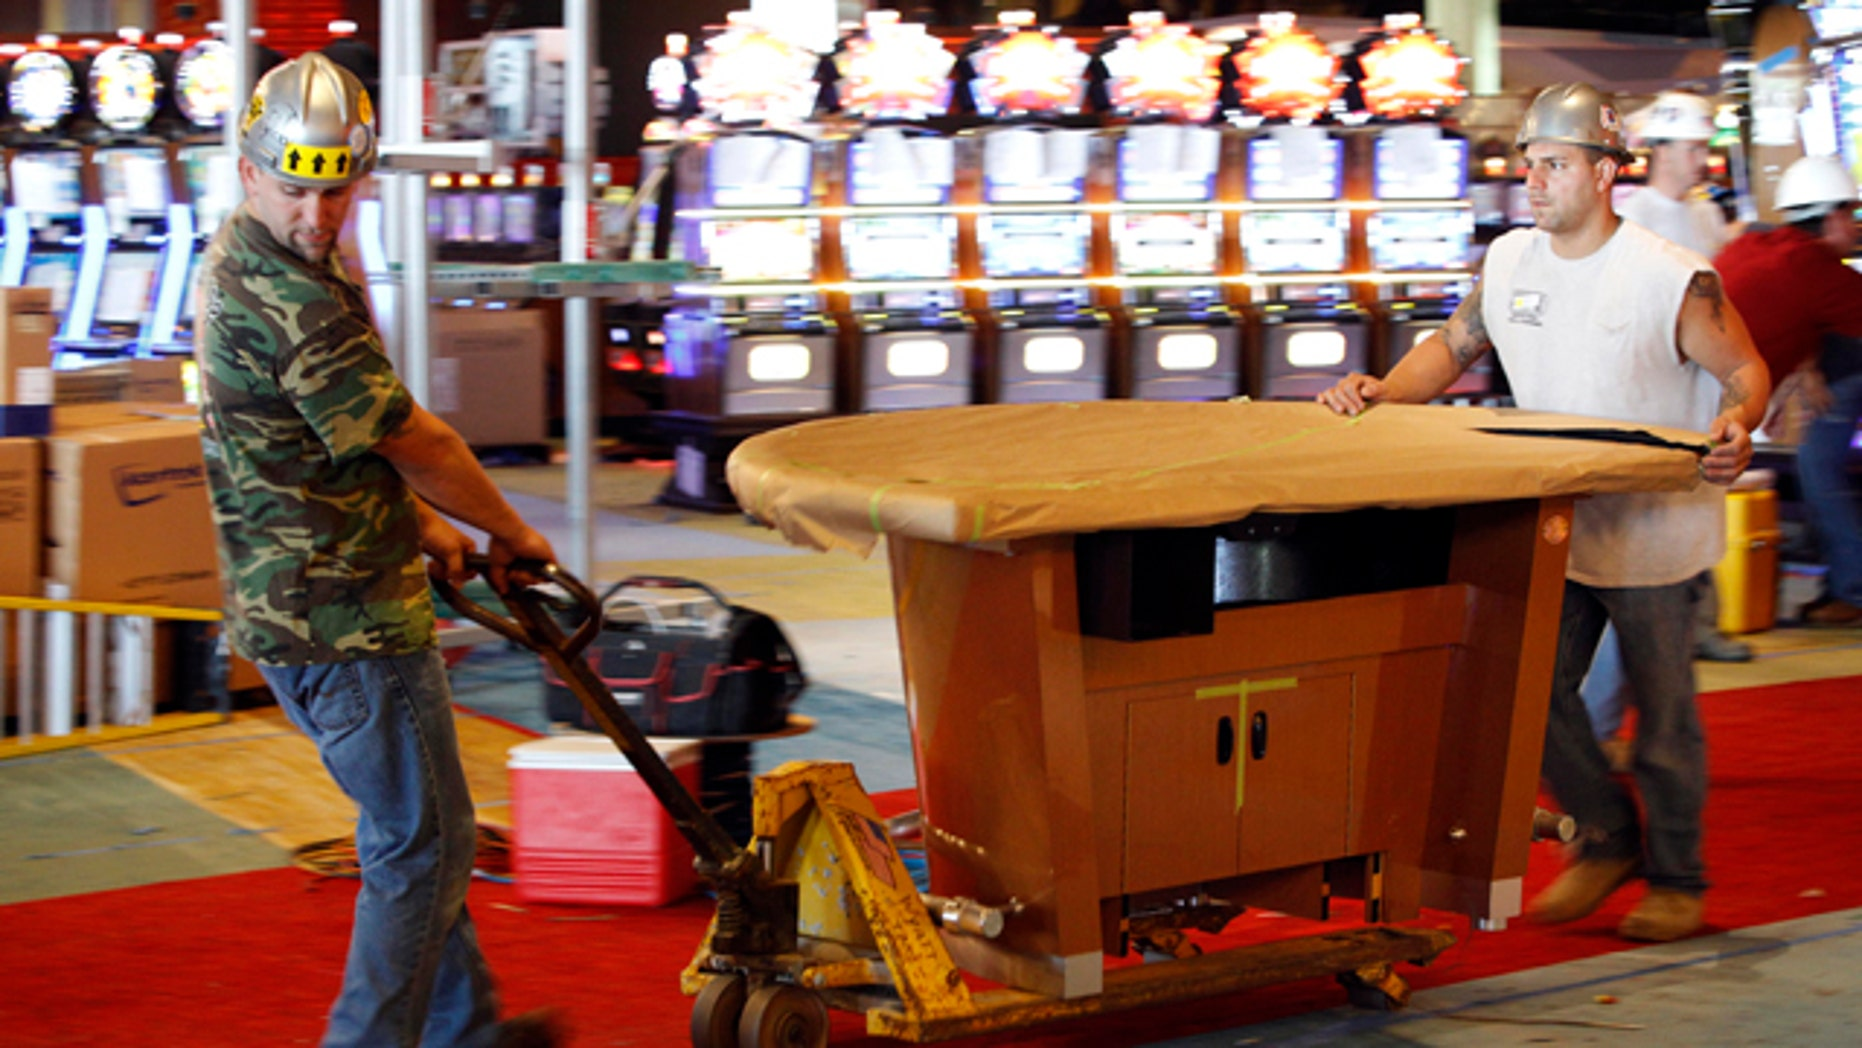 FILE - In this  Aug. 30, 2010 file photo, workmen move a table game at the SugarHouse Casino in Philadelphia, Six years after the state Legislature legalized gambling, Philadelphia on Thursday, Sept. 23, 2010 is set to become the largest U.S. city with a casino.  (AP Photo/Matt Rourke, File)